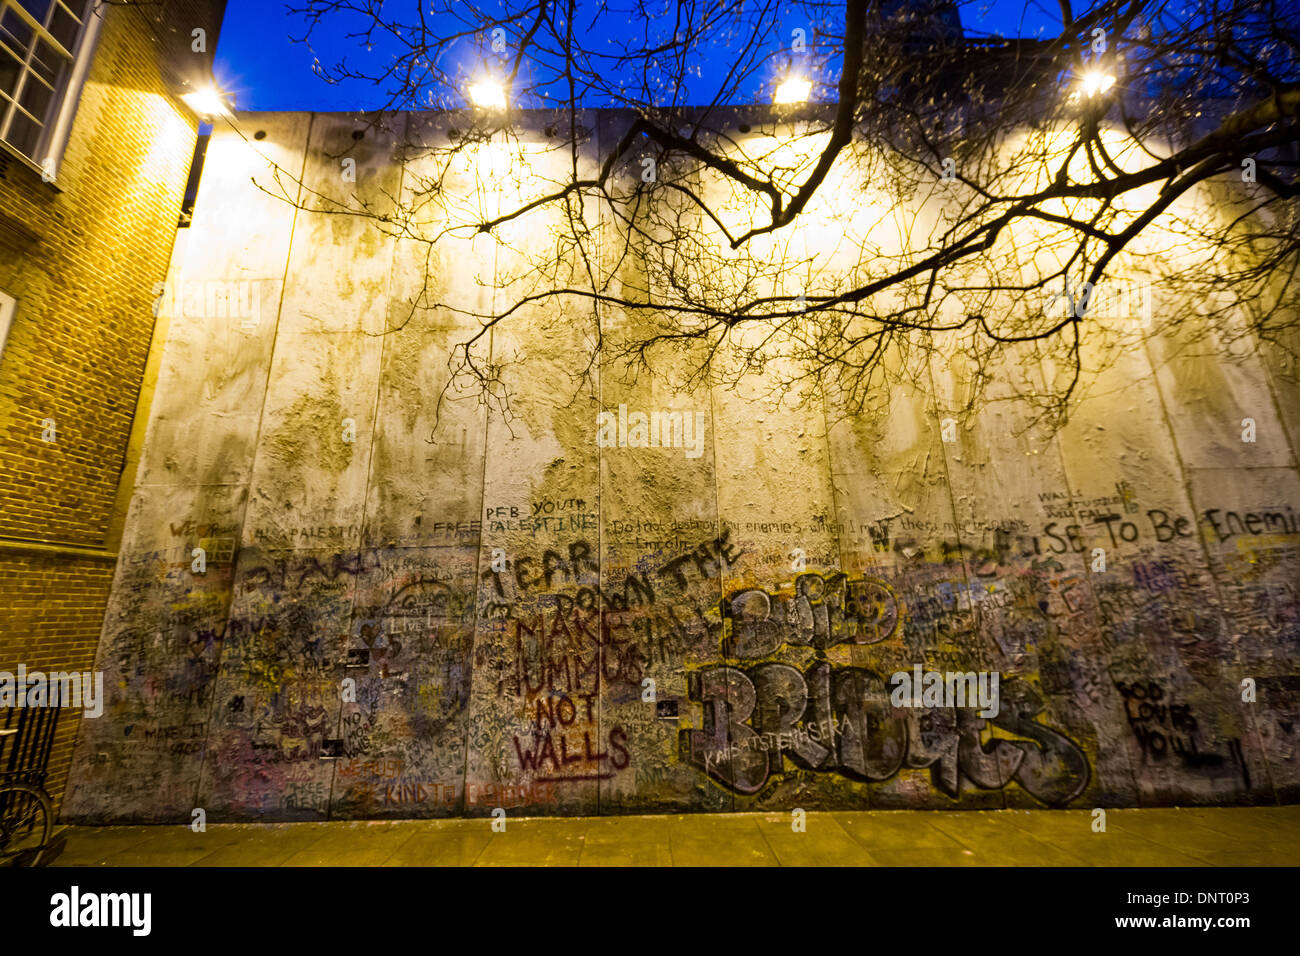 Bethlehem Wall art installation by Justin Butcher in London Stock ...